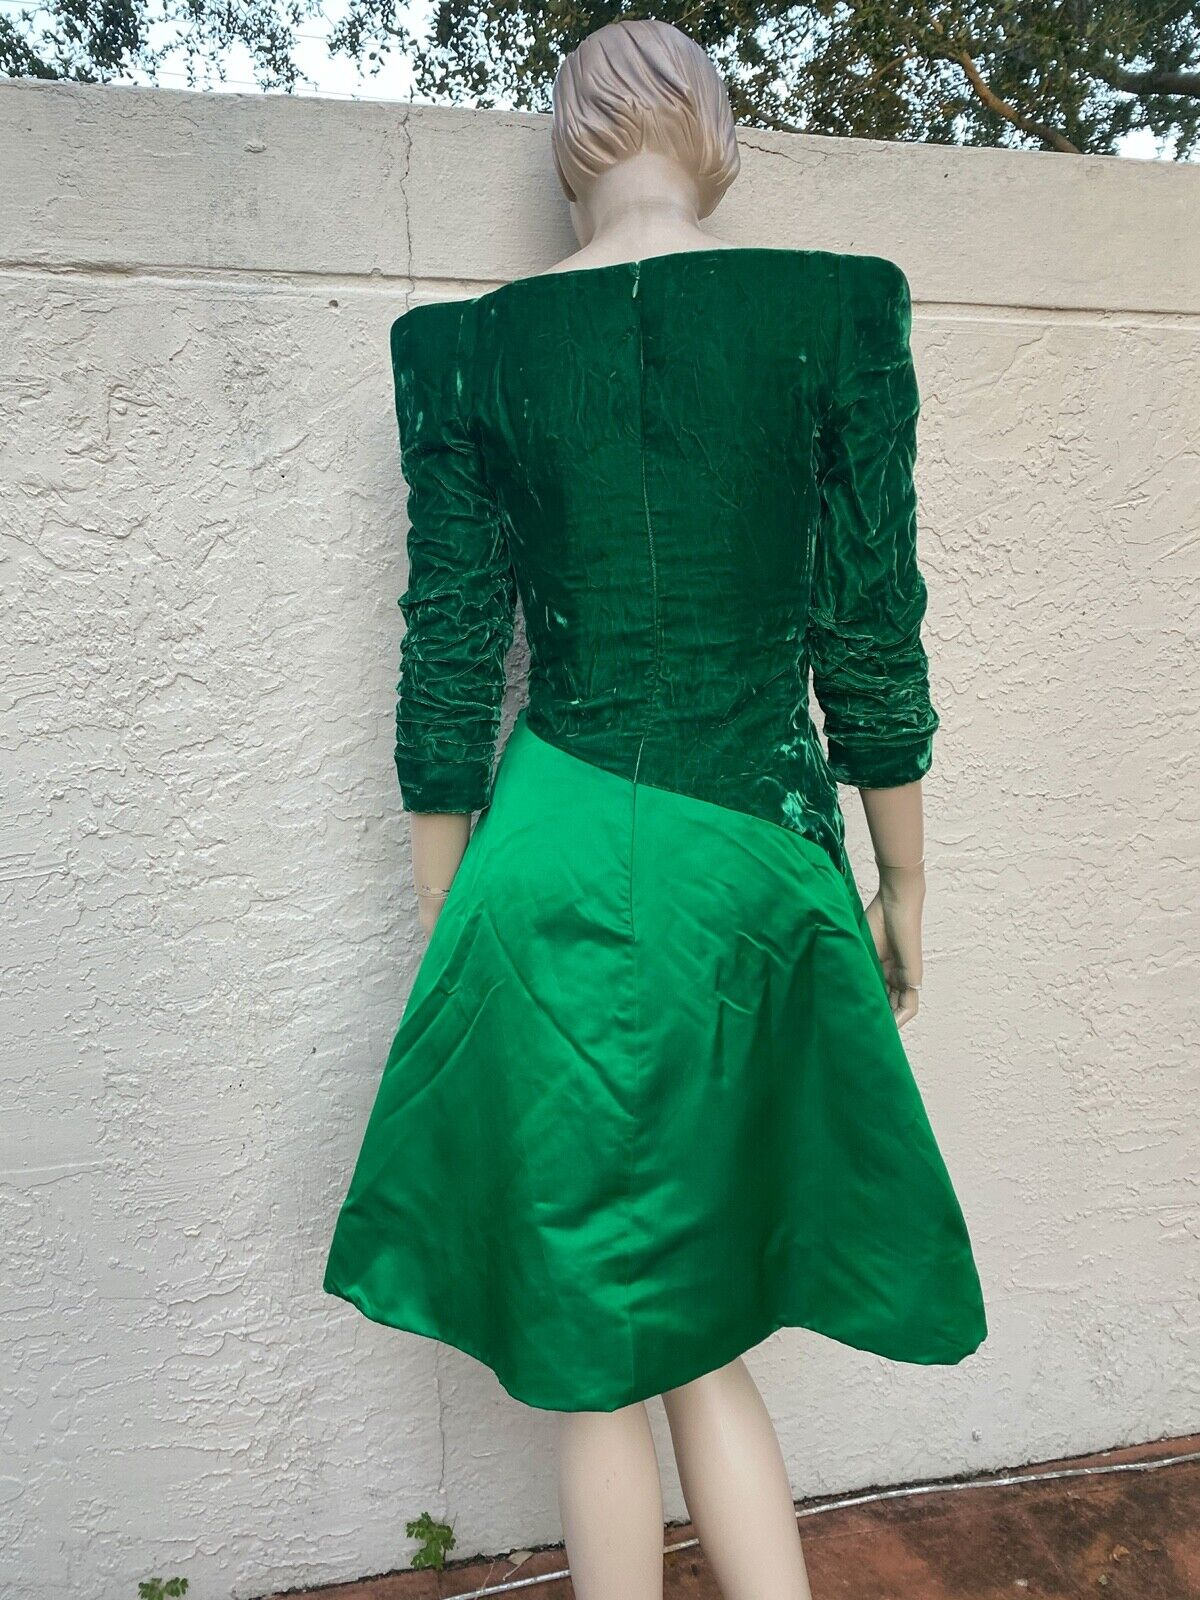 ARNOLD SCAASI BOUTIQUE VINTAGE 80's OFF THE SHOUL… - image 6